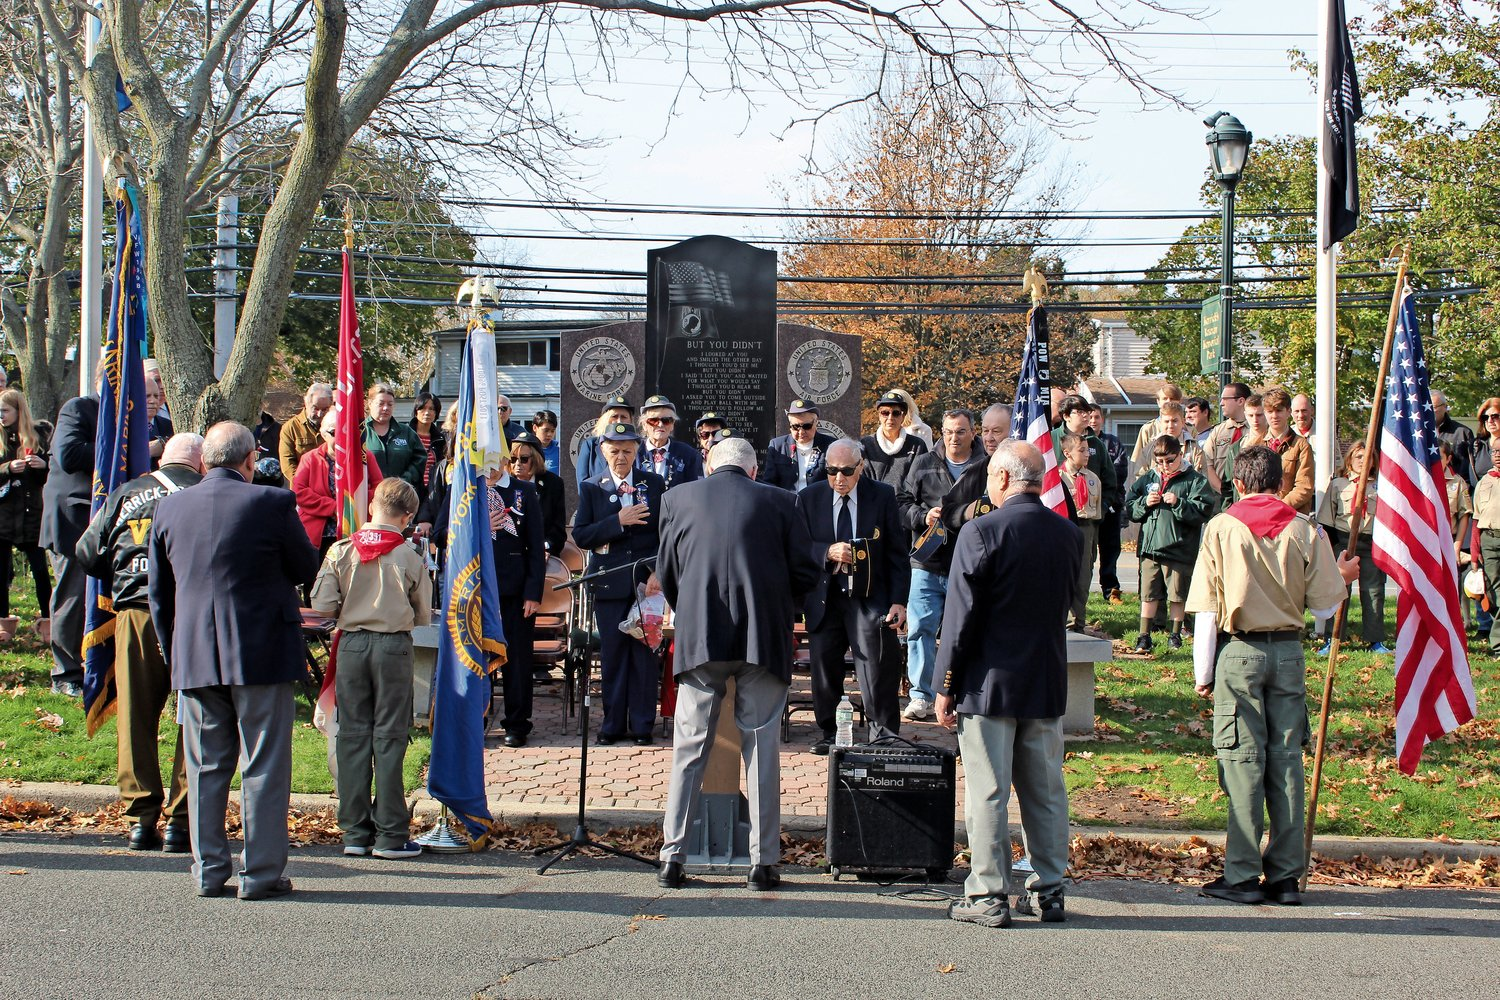 A humble crowd gathered in front of Merrick's veterans' memorial, left, in observance of Veterans Day.